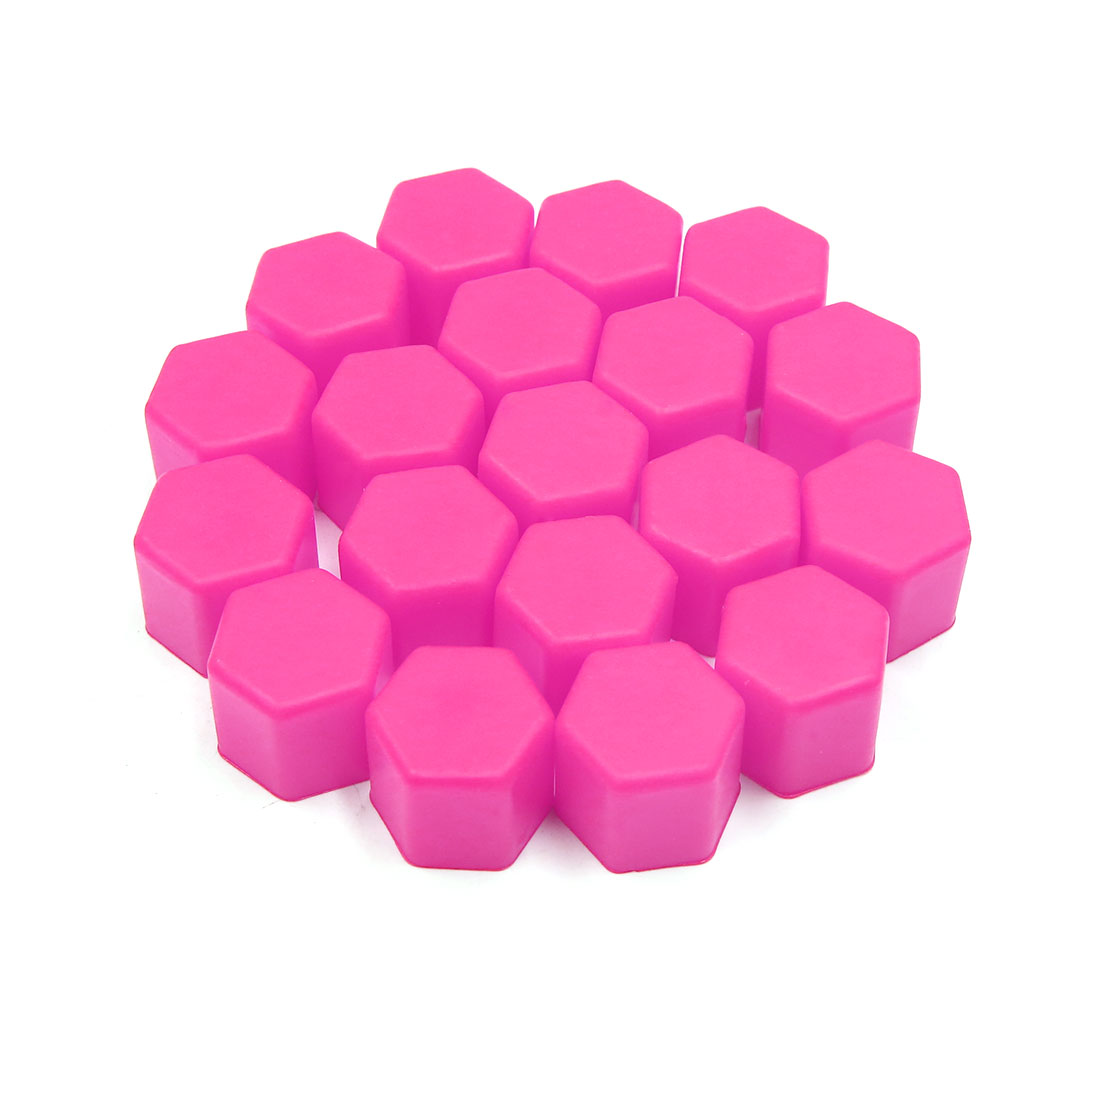 20pcs 17mm Rubber Car Wheel Tire Tyre Nut Screw Cover Caps Hub Protector Pink